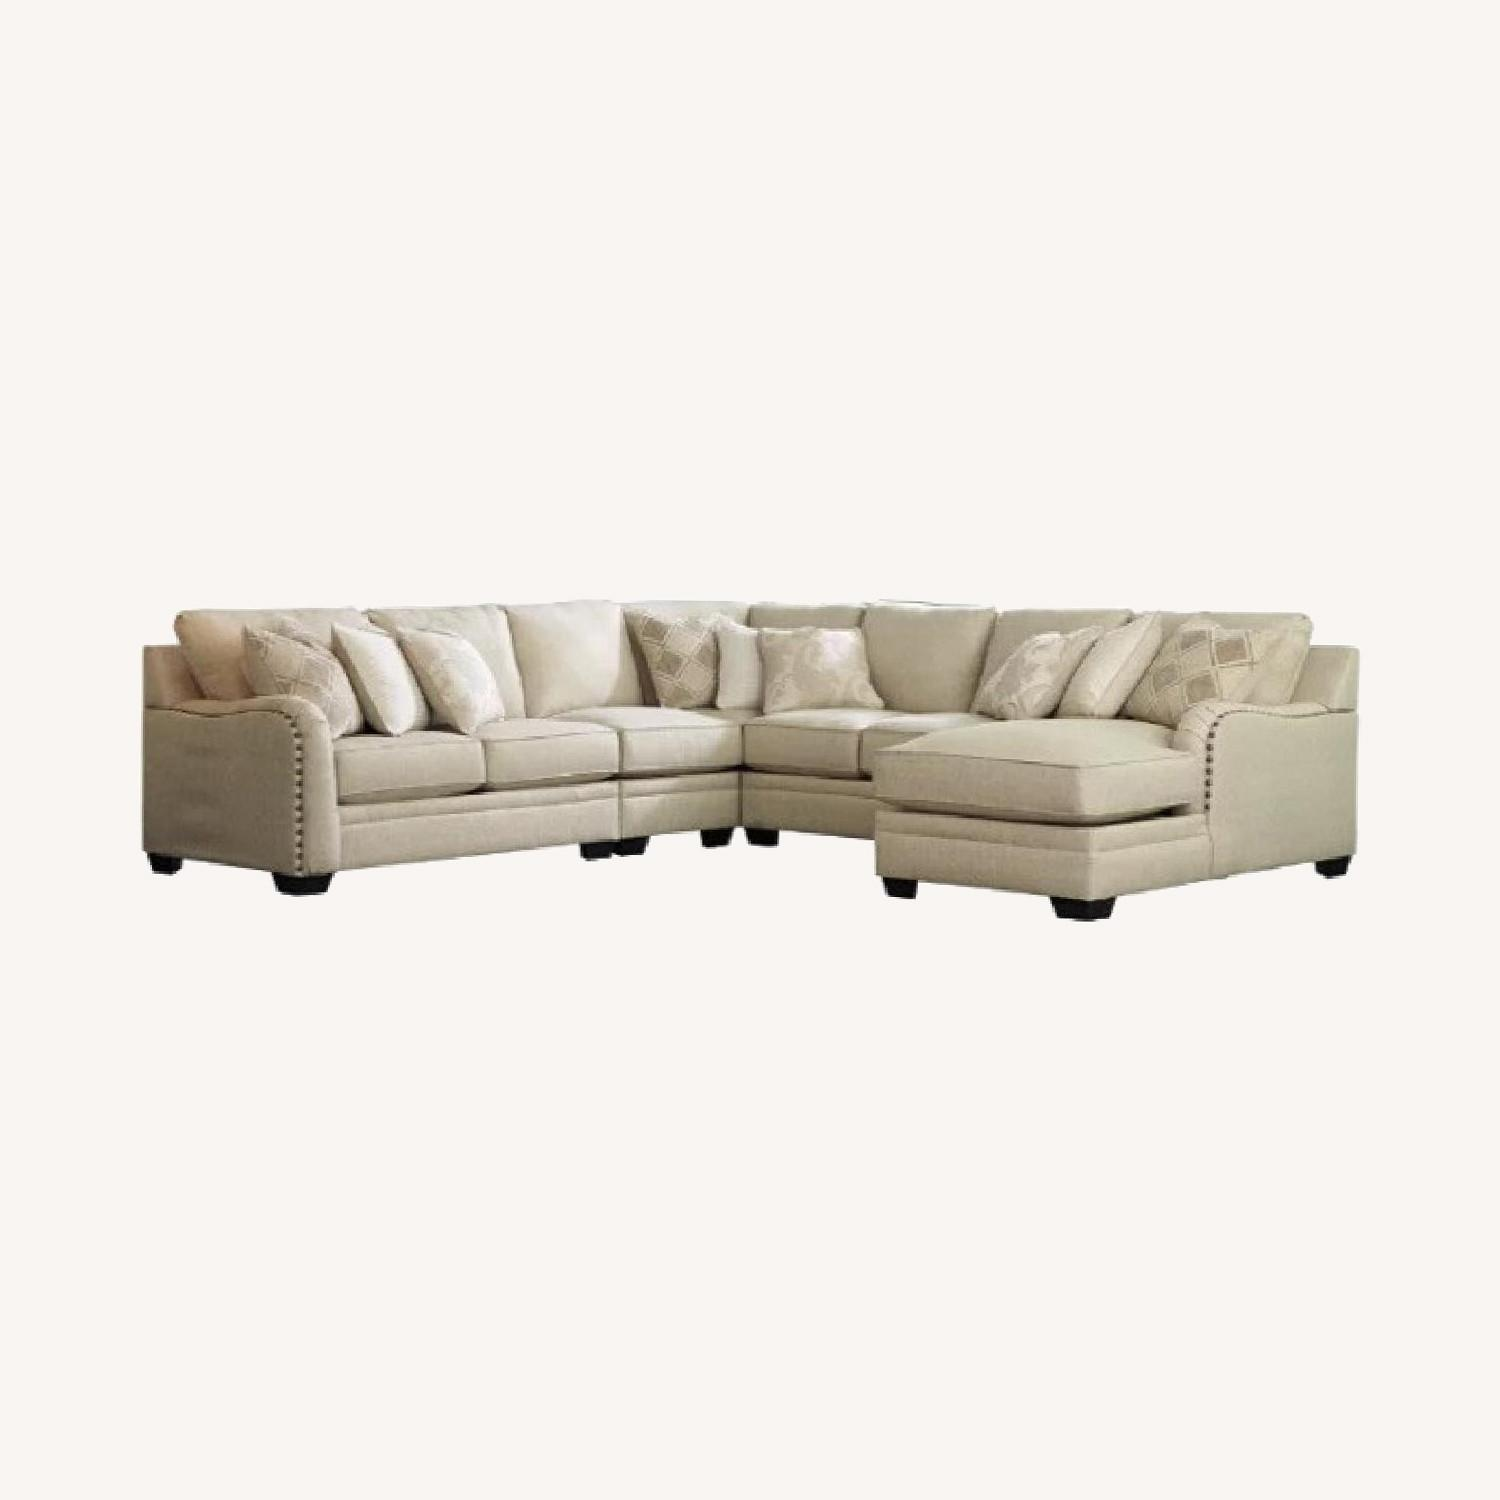 Ashley Furniture 5-pc Sectional with Chaise - image-0